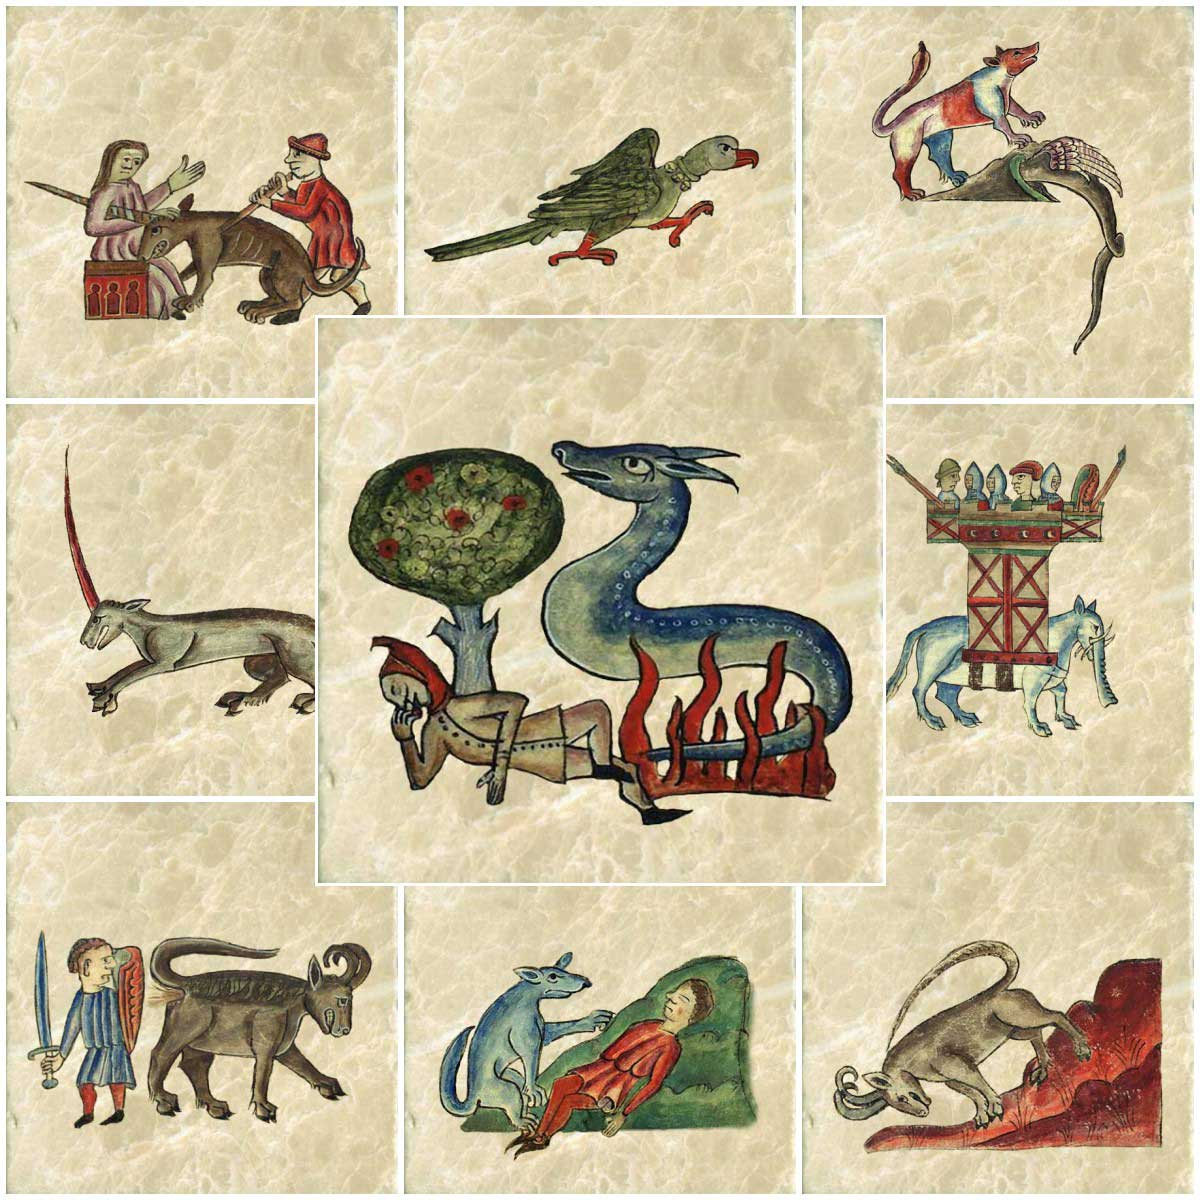 Bestiary of Anne Walshe, 1400-1445. From top left: remorseful virgin and unicorn, belled parrot, panther and dragon, monoceros, salamander, elephant, bonnacon, dog, ibex